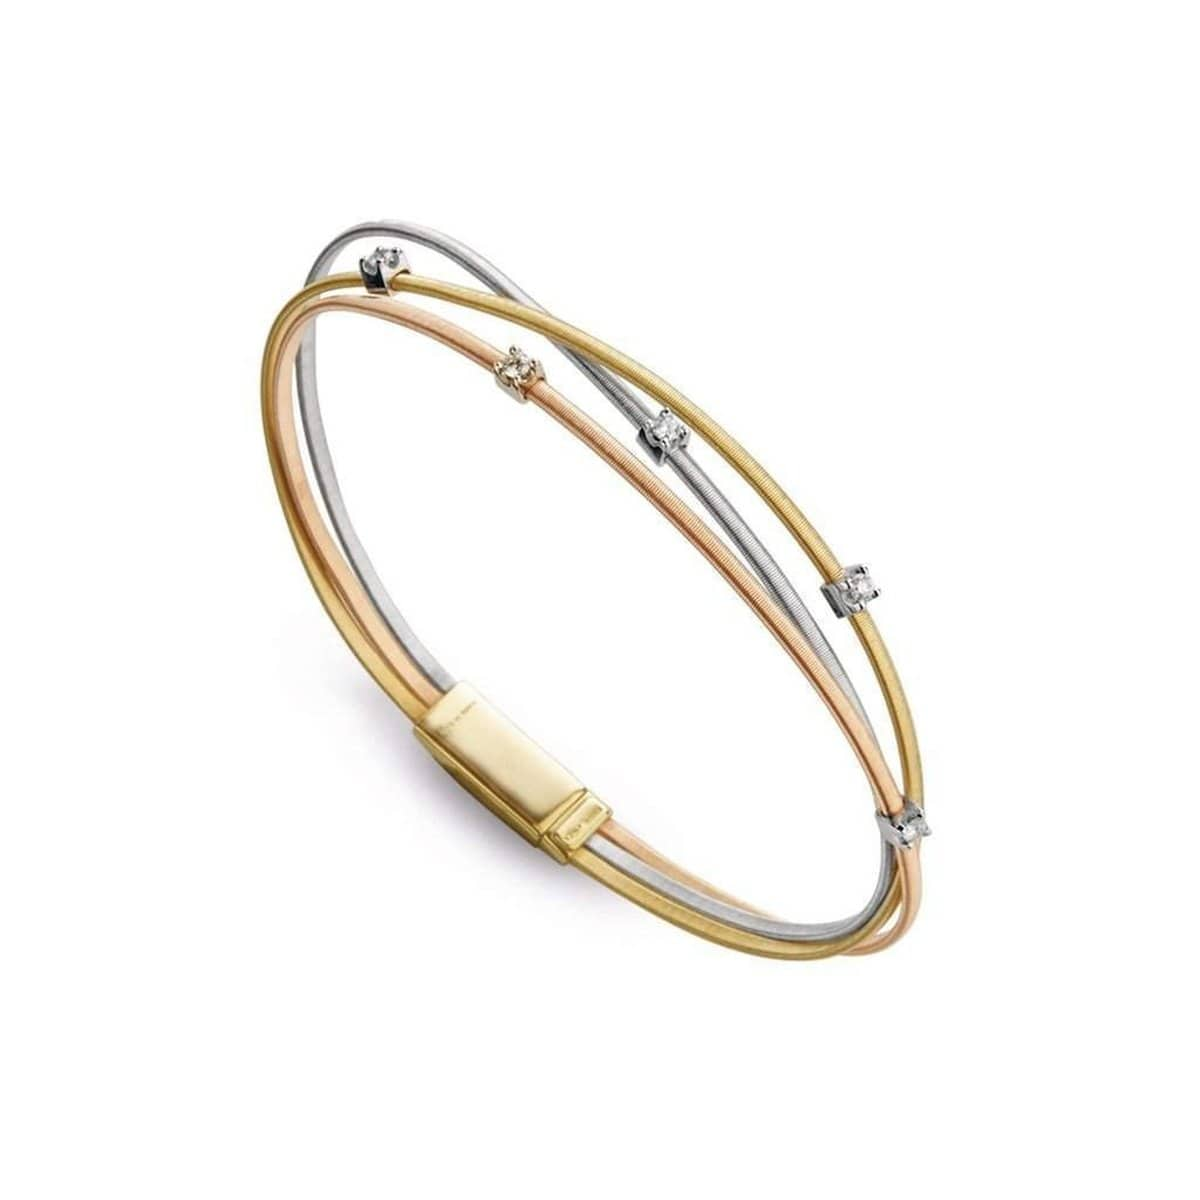 marco diamond bracelet single bicego white masai gold station image